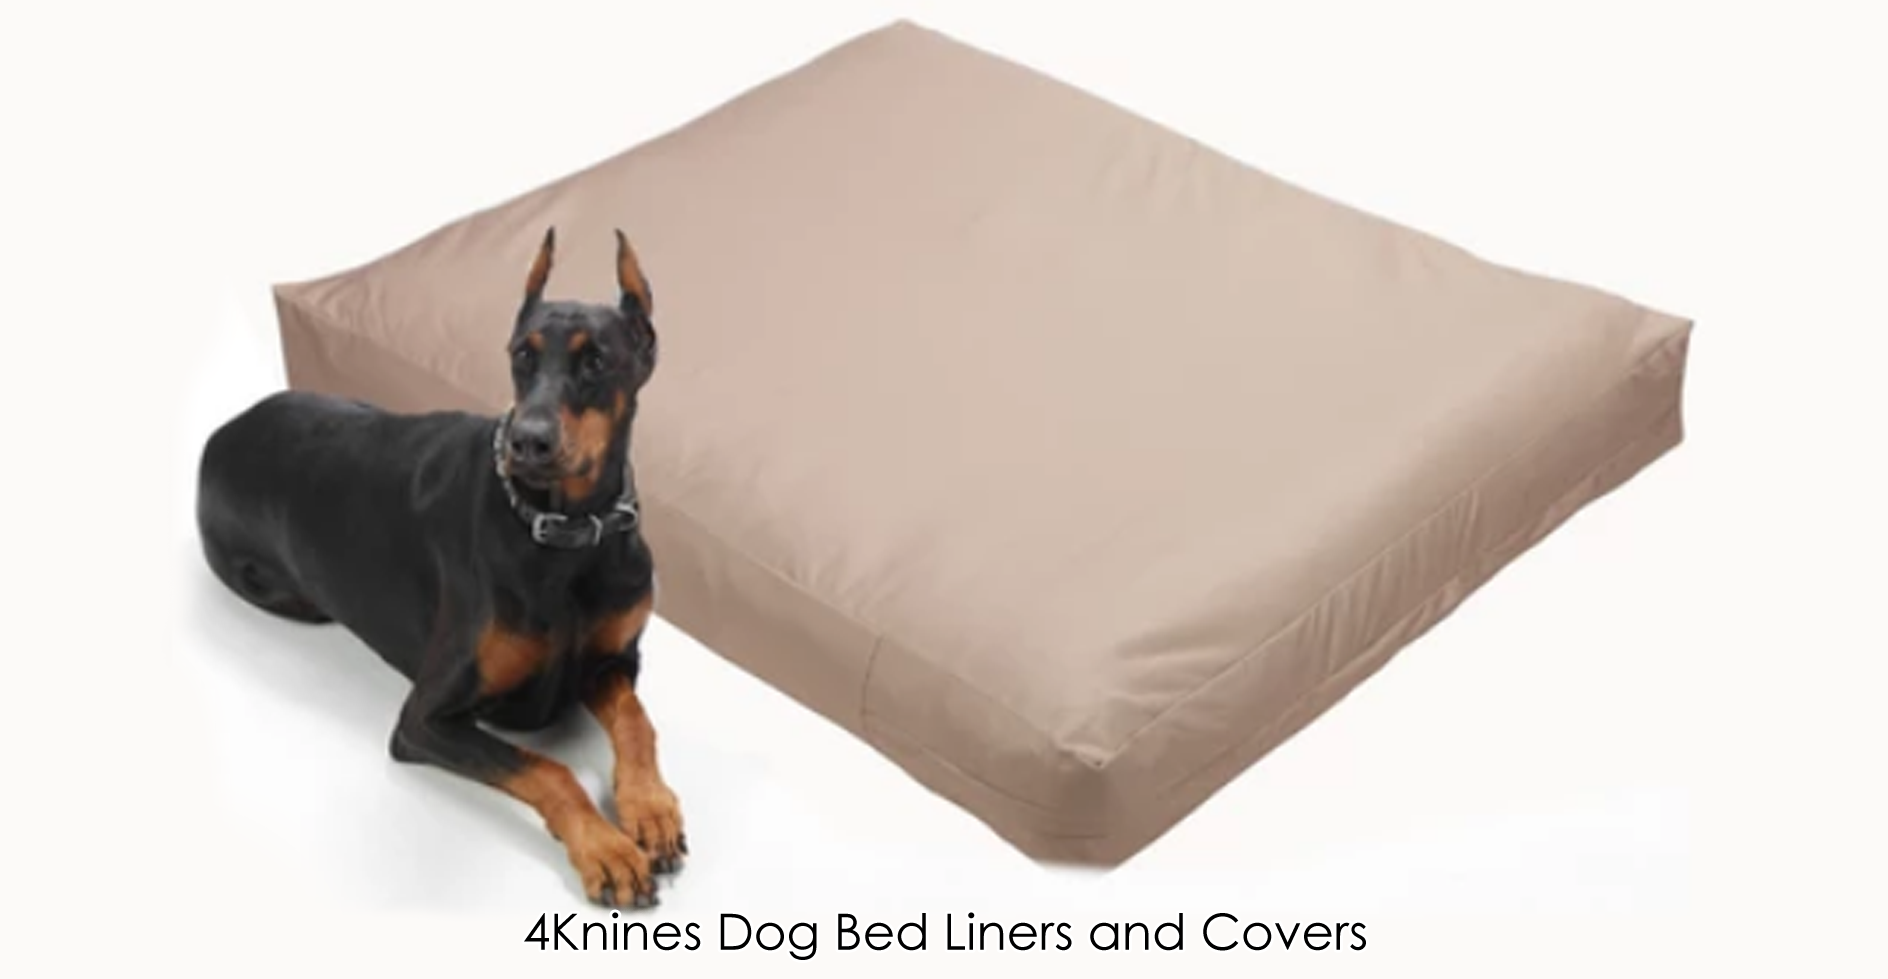 4Knines Dog Bed Liners and Covers